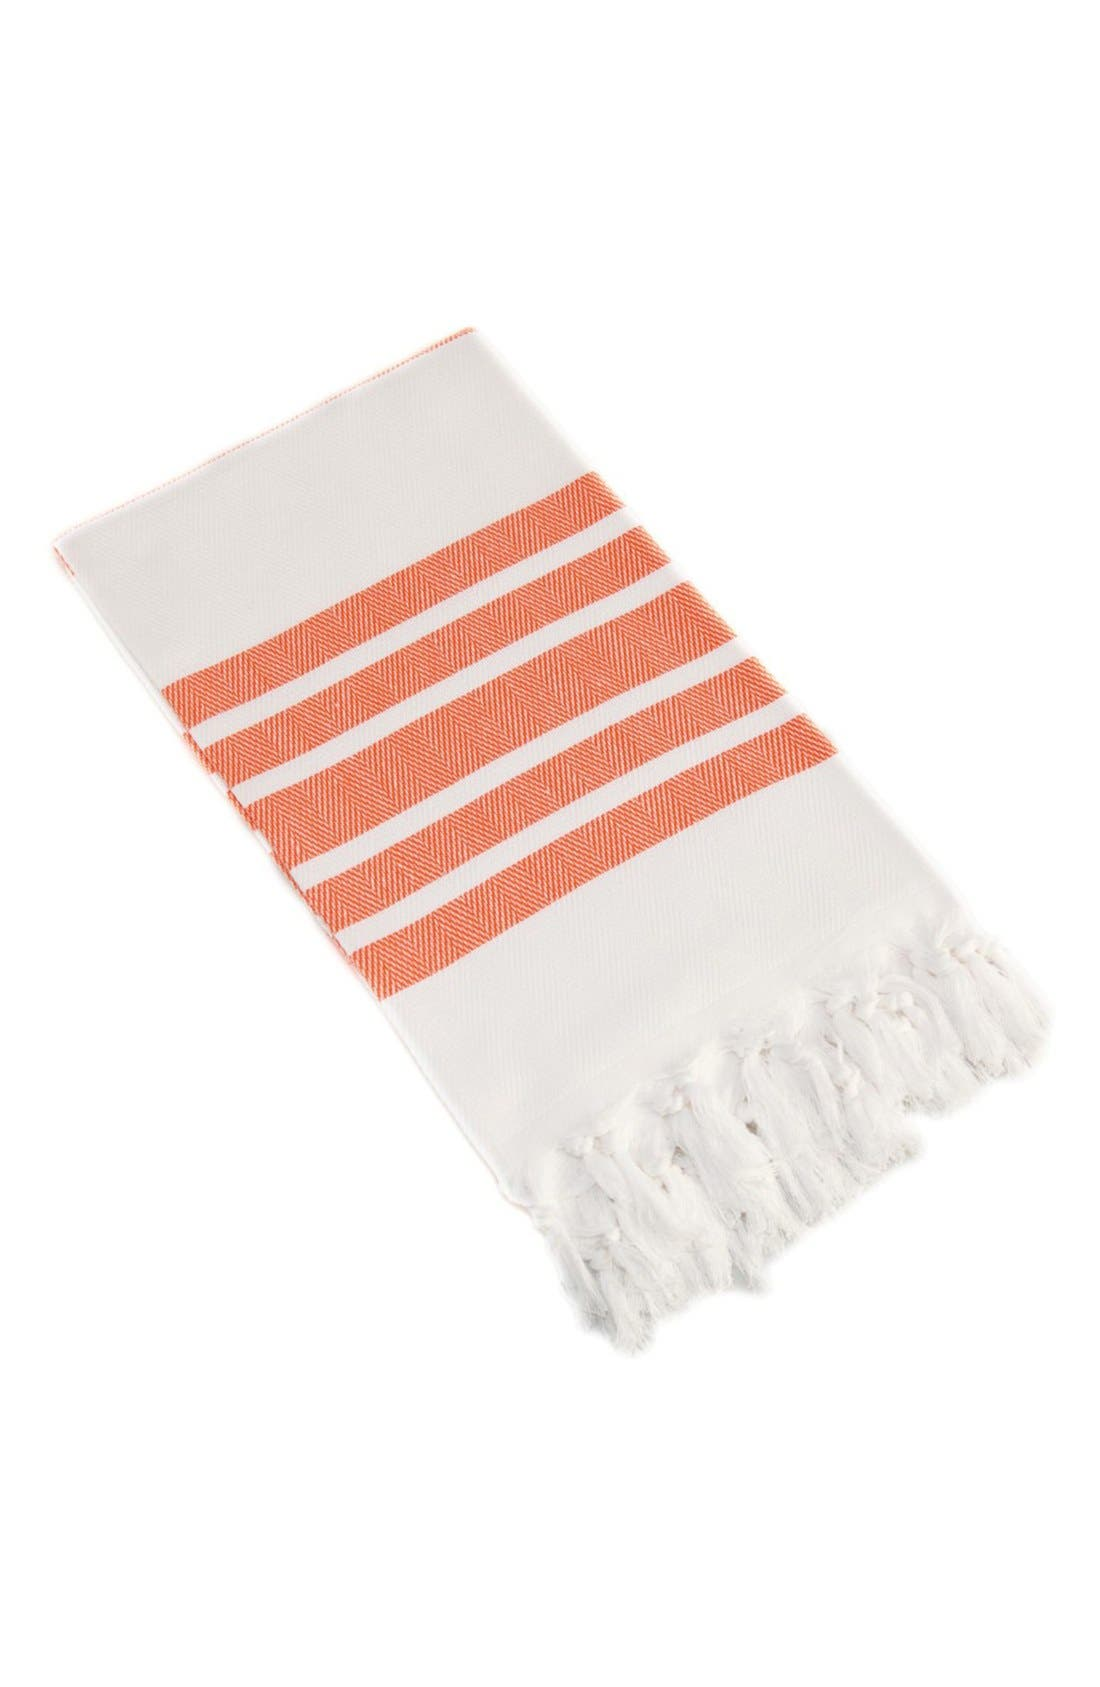 Linum Home Textiles Herringbone Striped Turkish Pestemal Towel